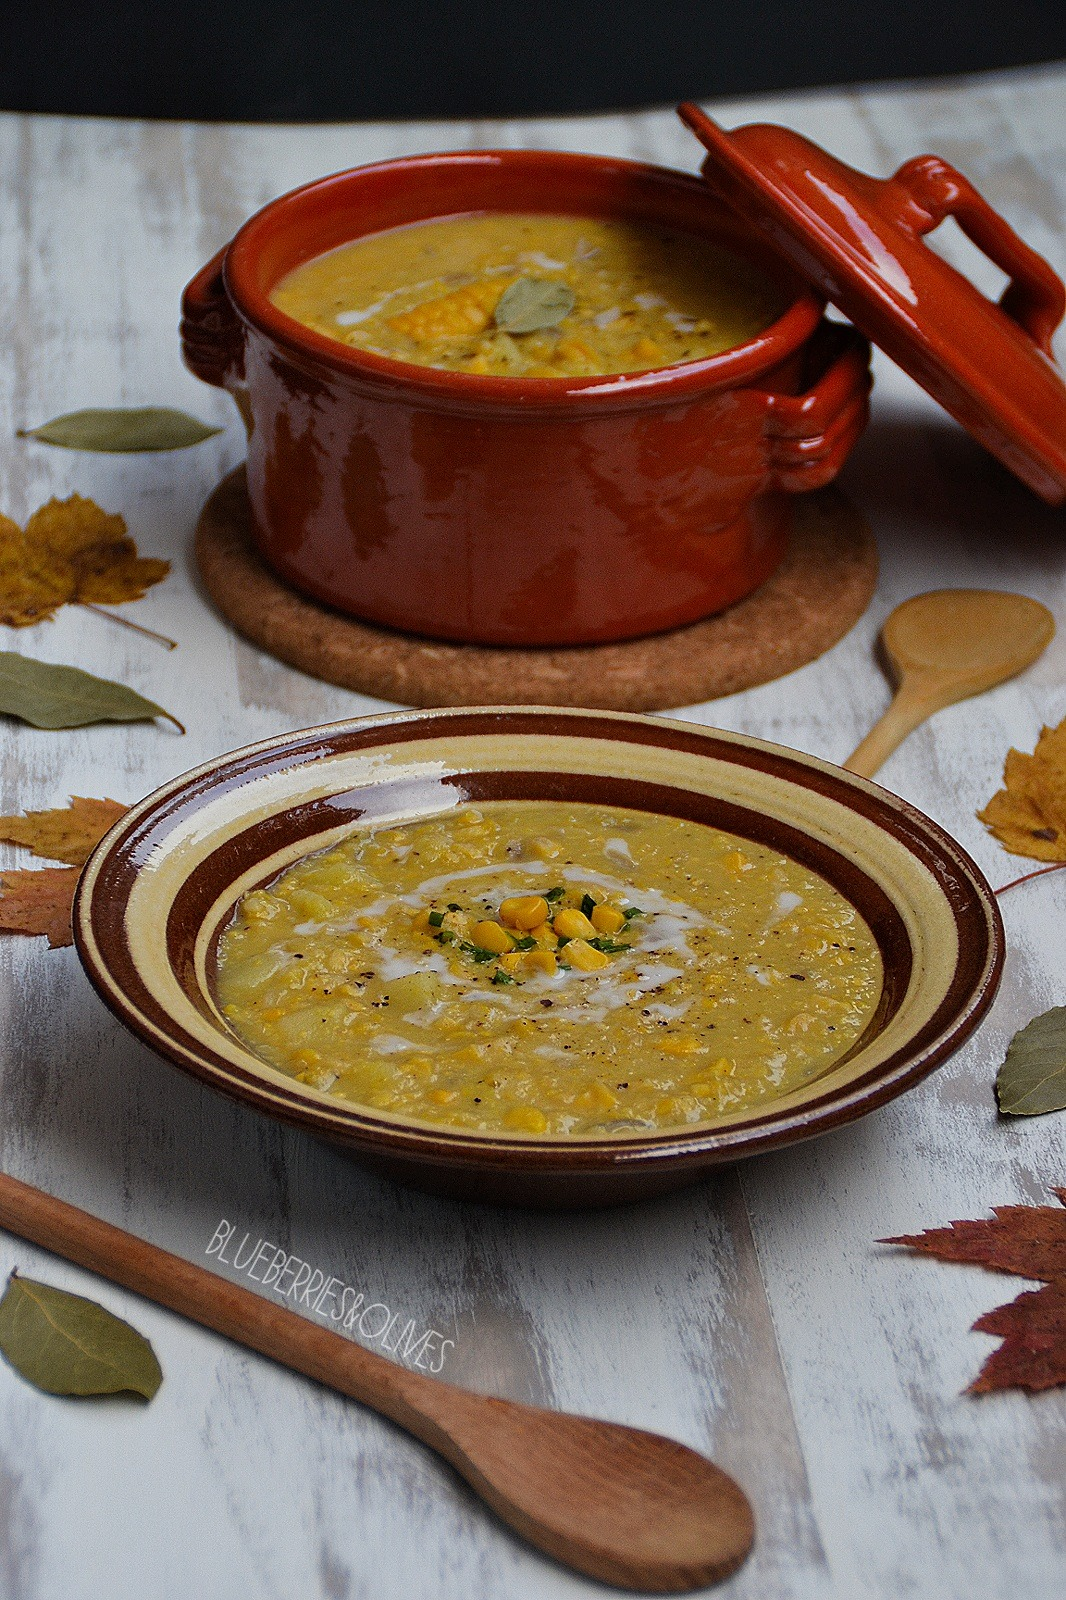 CREAMY CORN AND POTATO CHOWDER